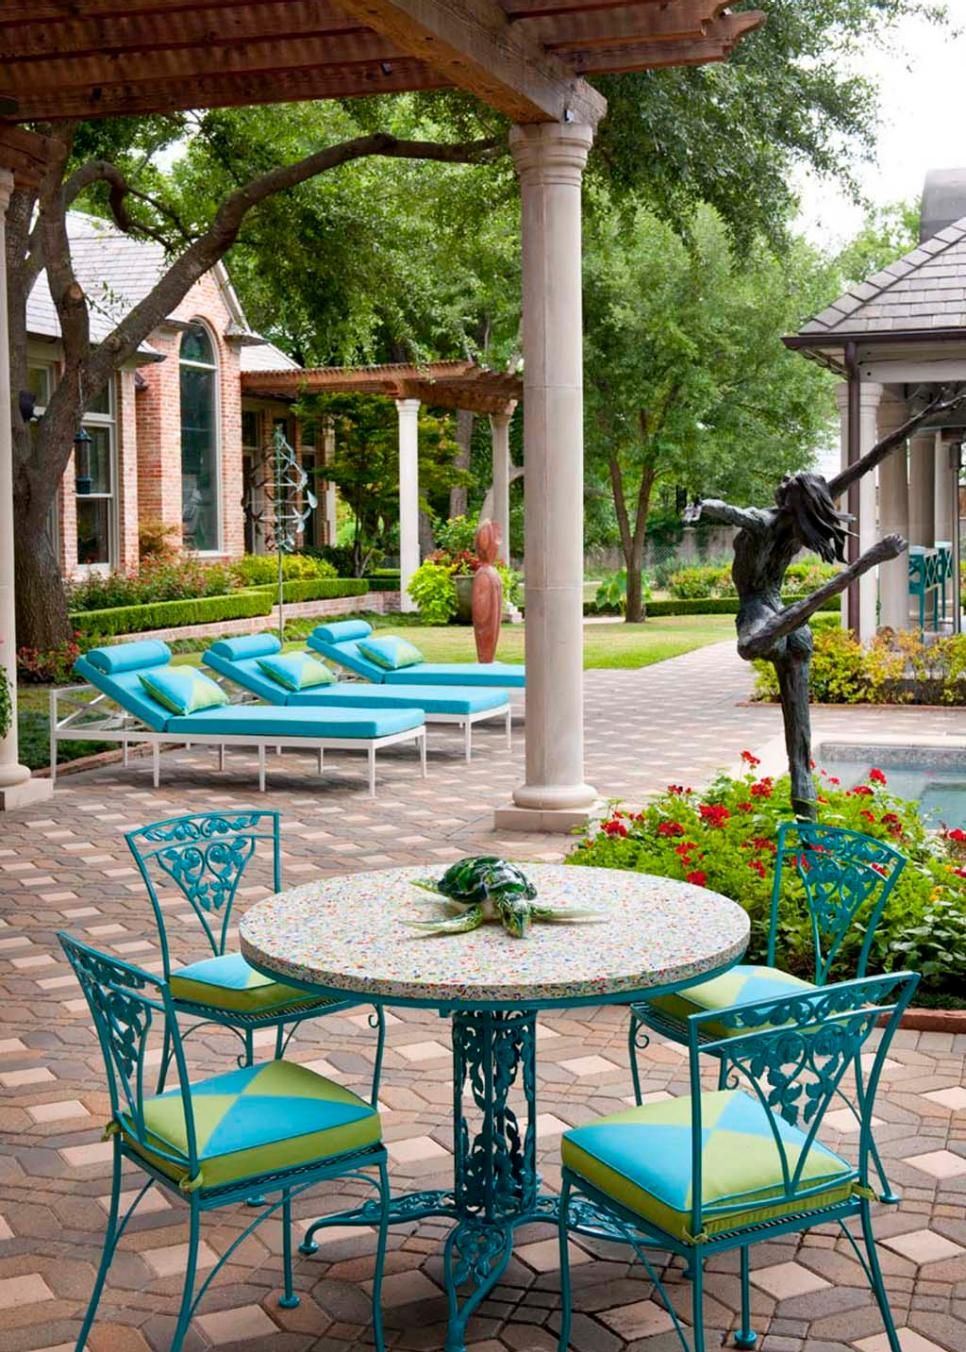 lime green patio furniture. Colorful Patio Furniture In Bright Turquoise And Lime Green Bring Fun Energy To This Outdoor Space